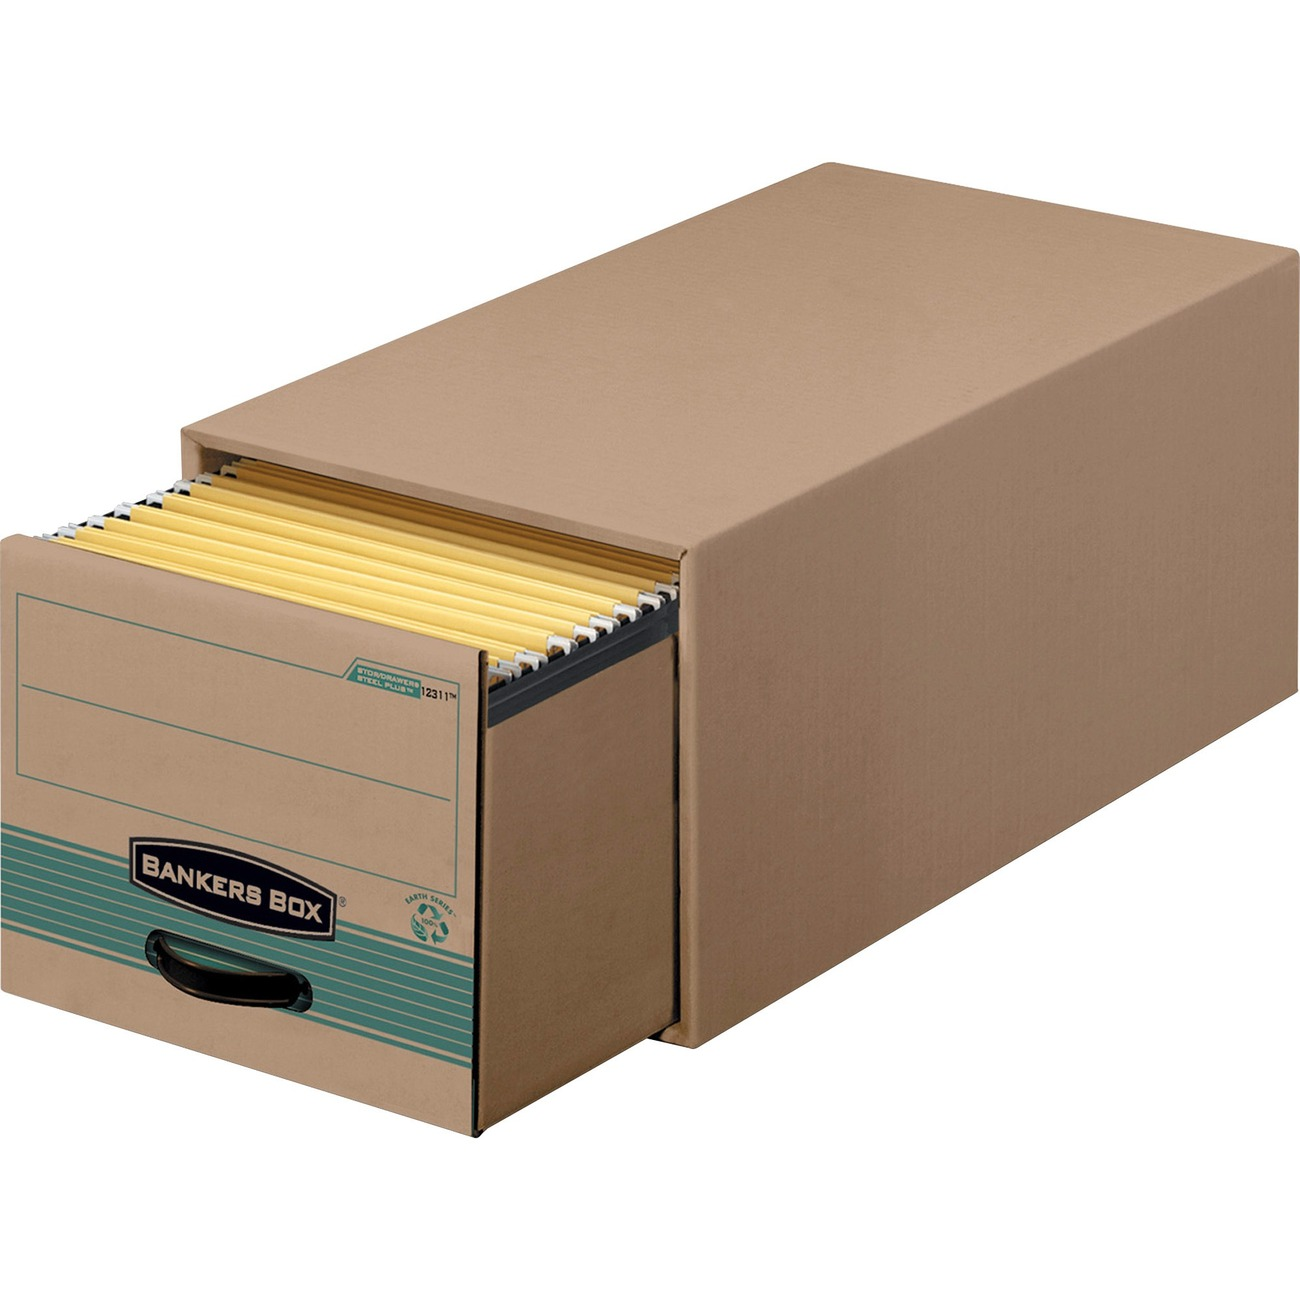 Bankers Box Stor Drawer File